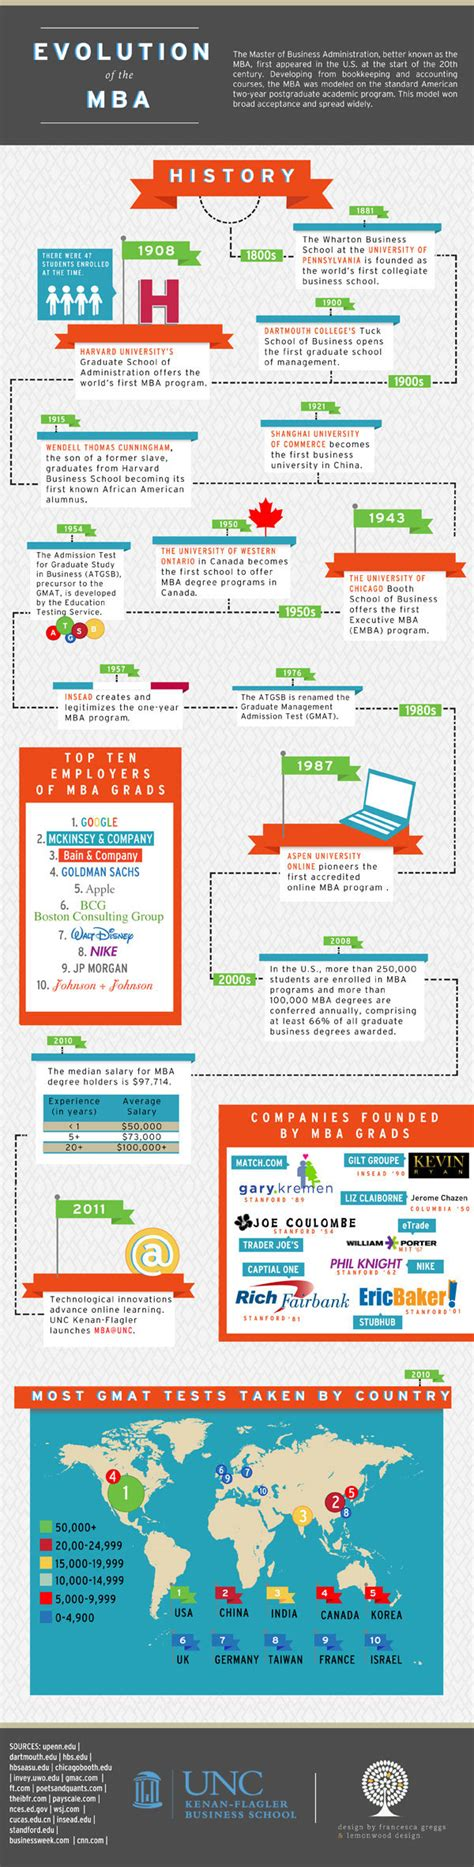 Unc Mba Career Services by The Evolution Of The Mba Infographic Mba Unc